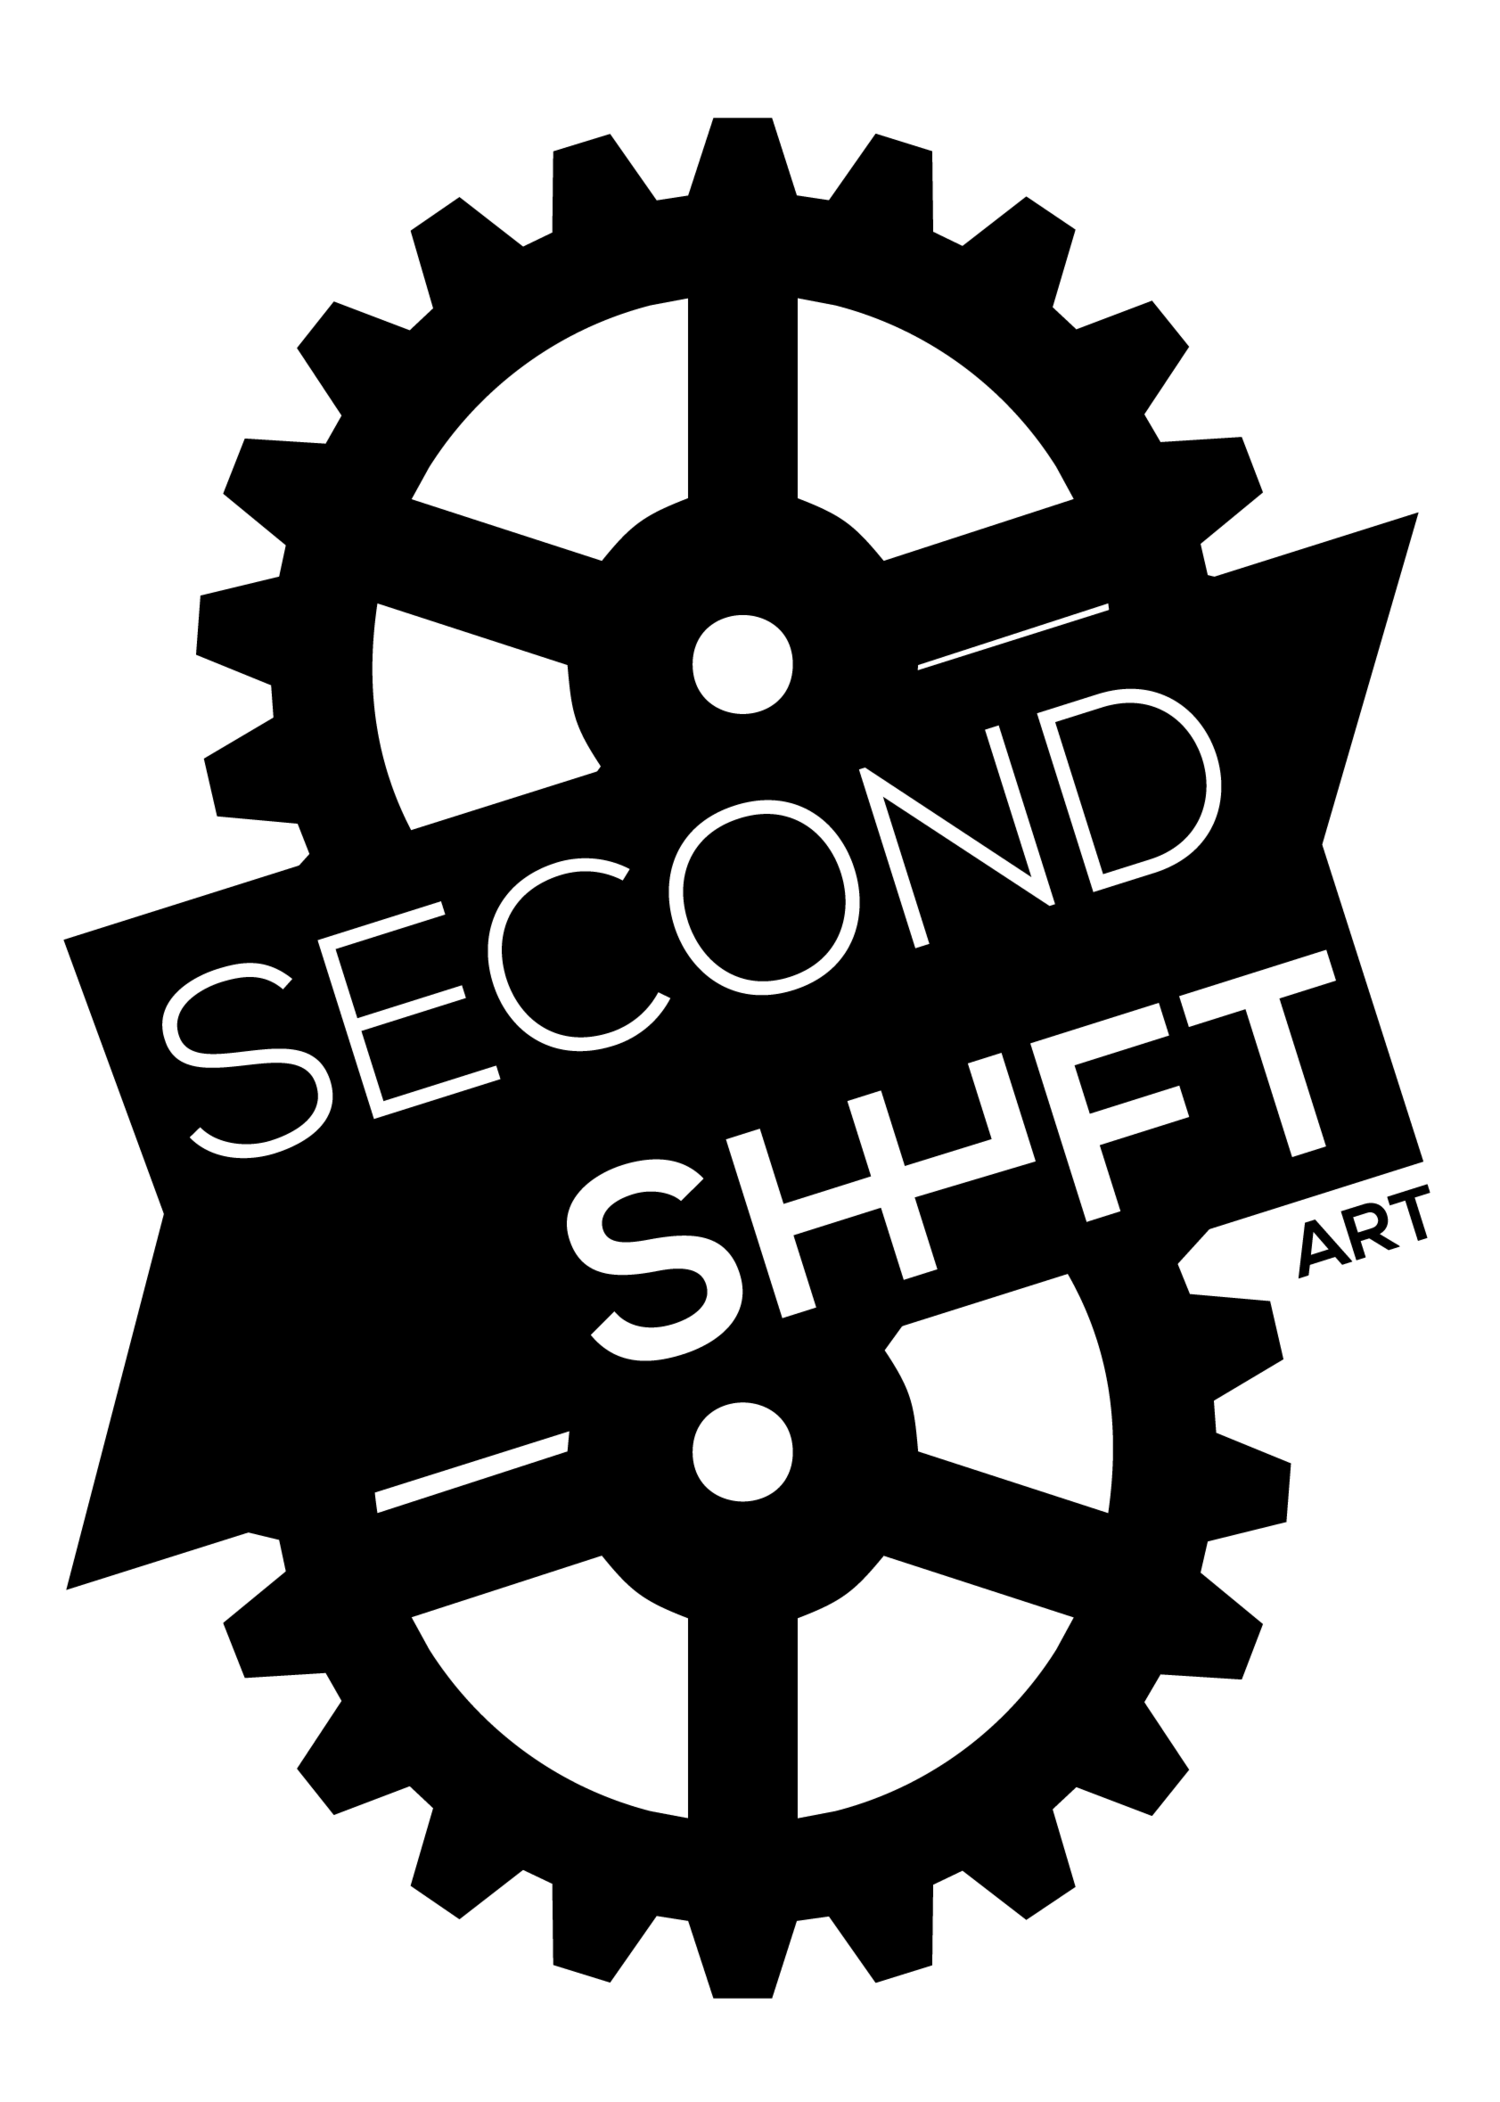 Definition of second shift